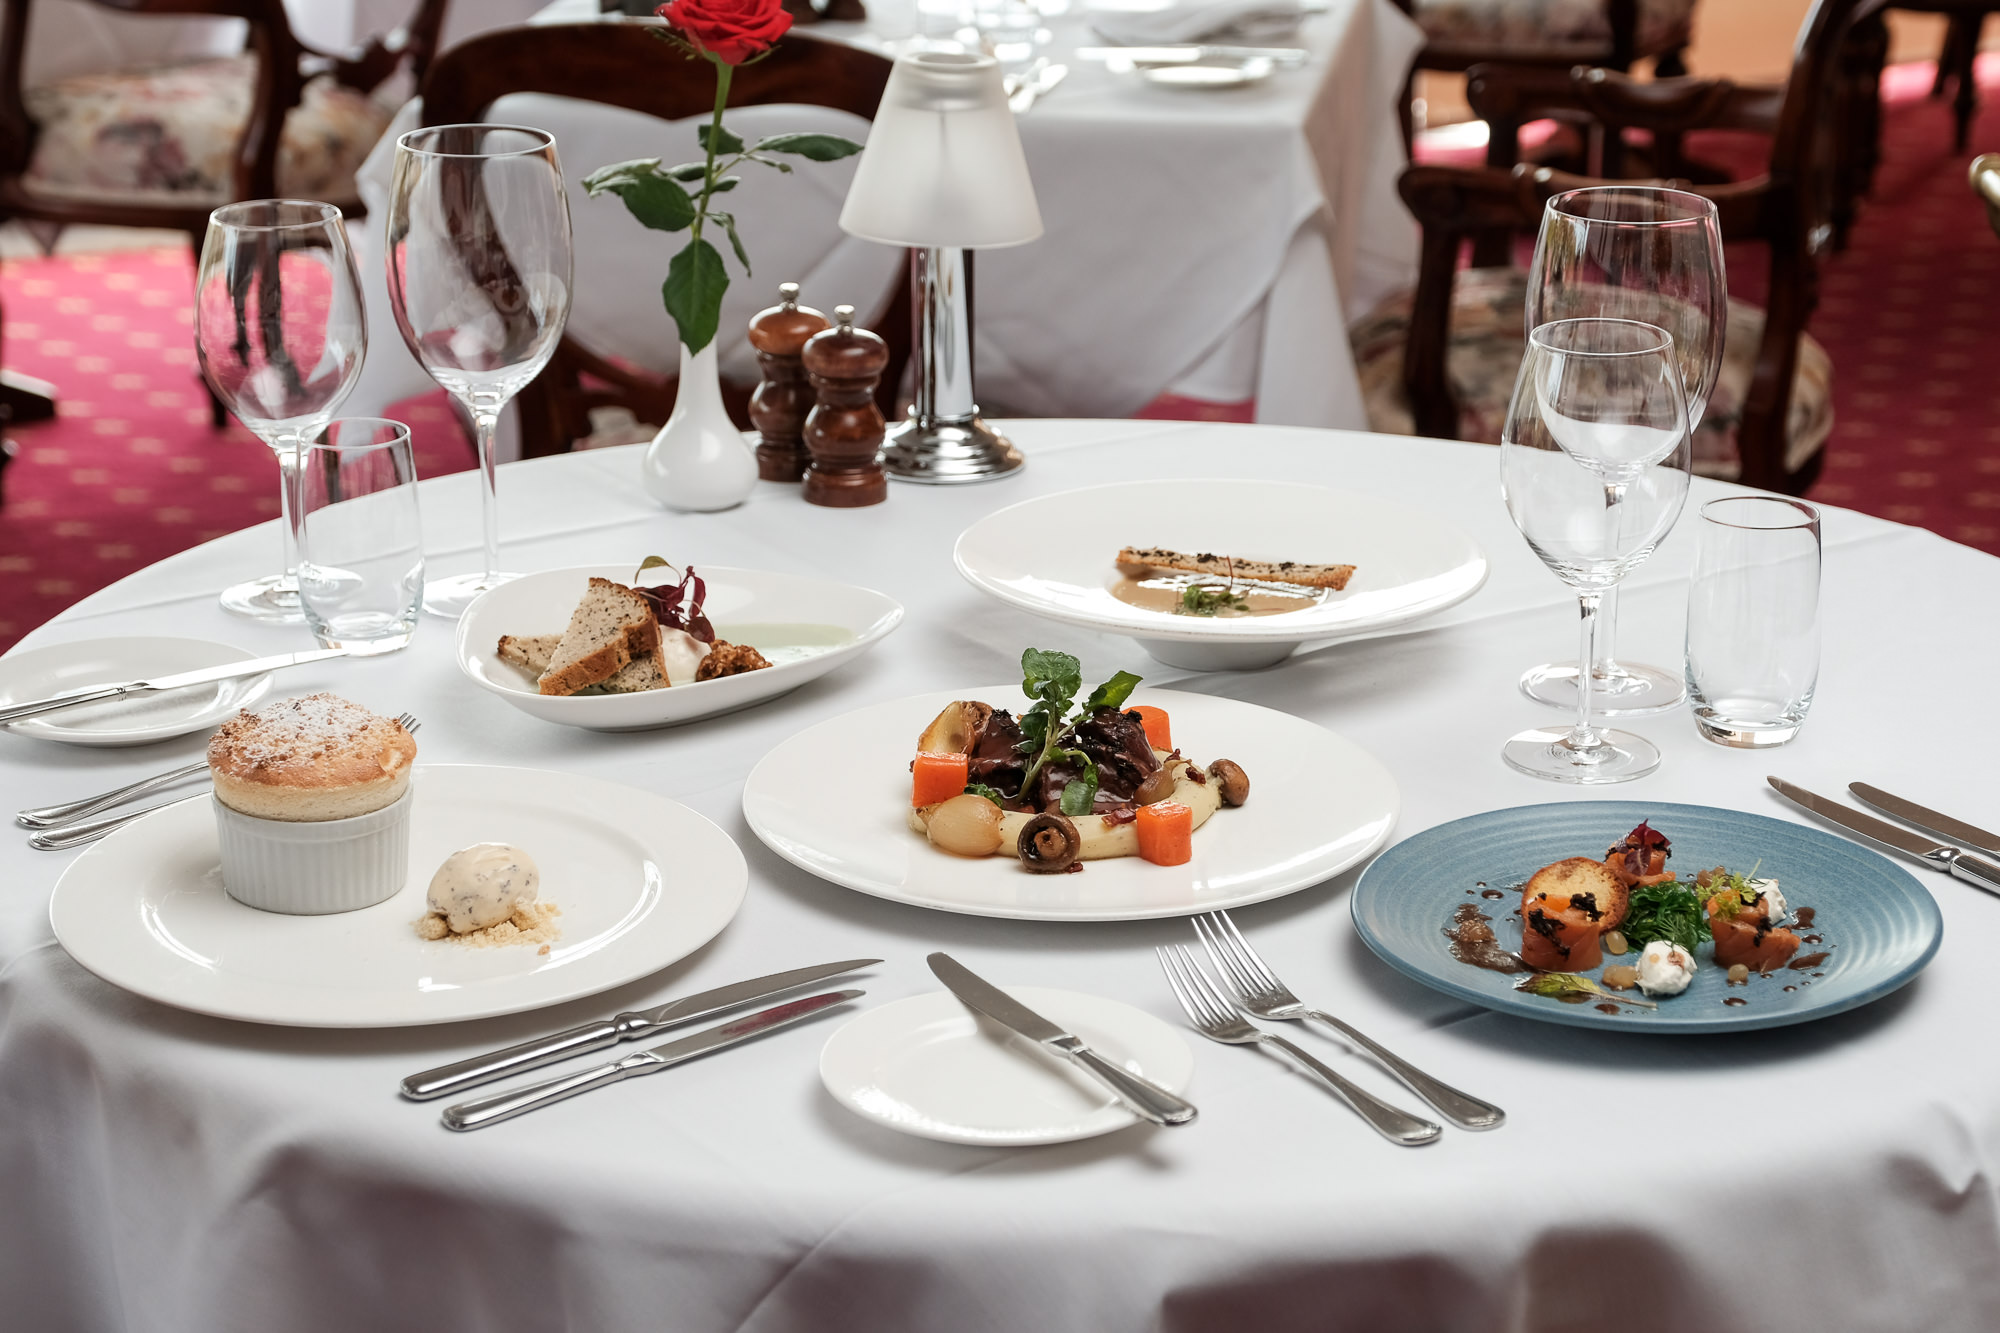 Five plates of fine dining food on a white table with empty wine glasses